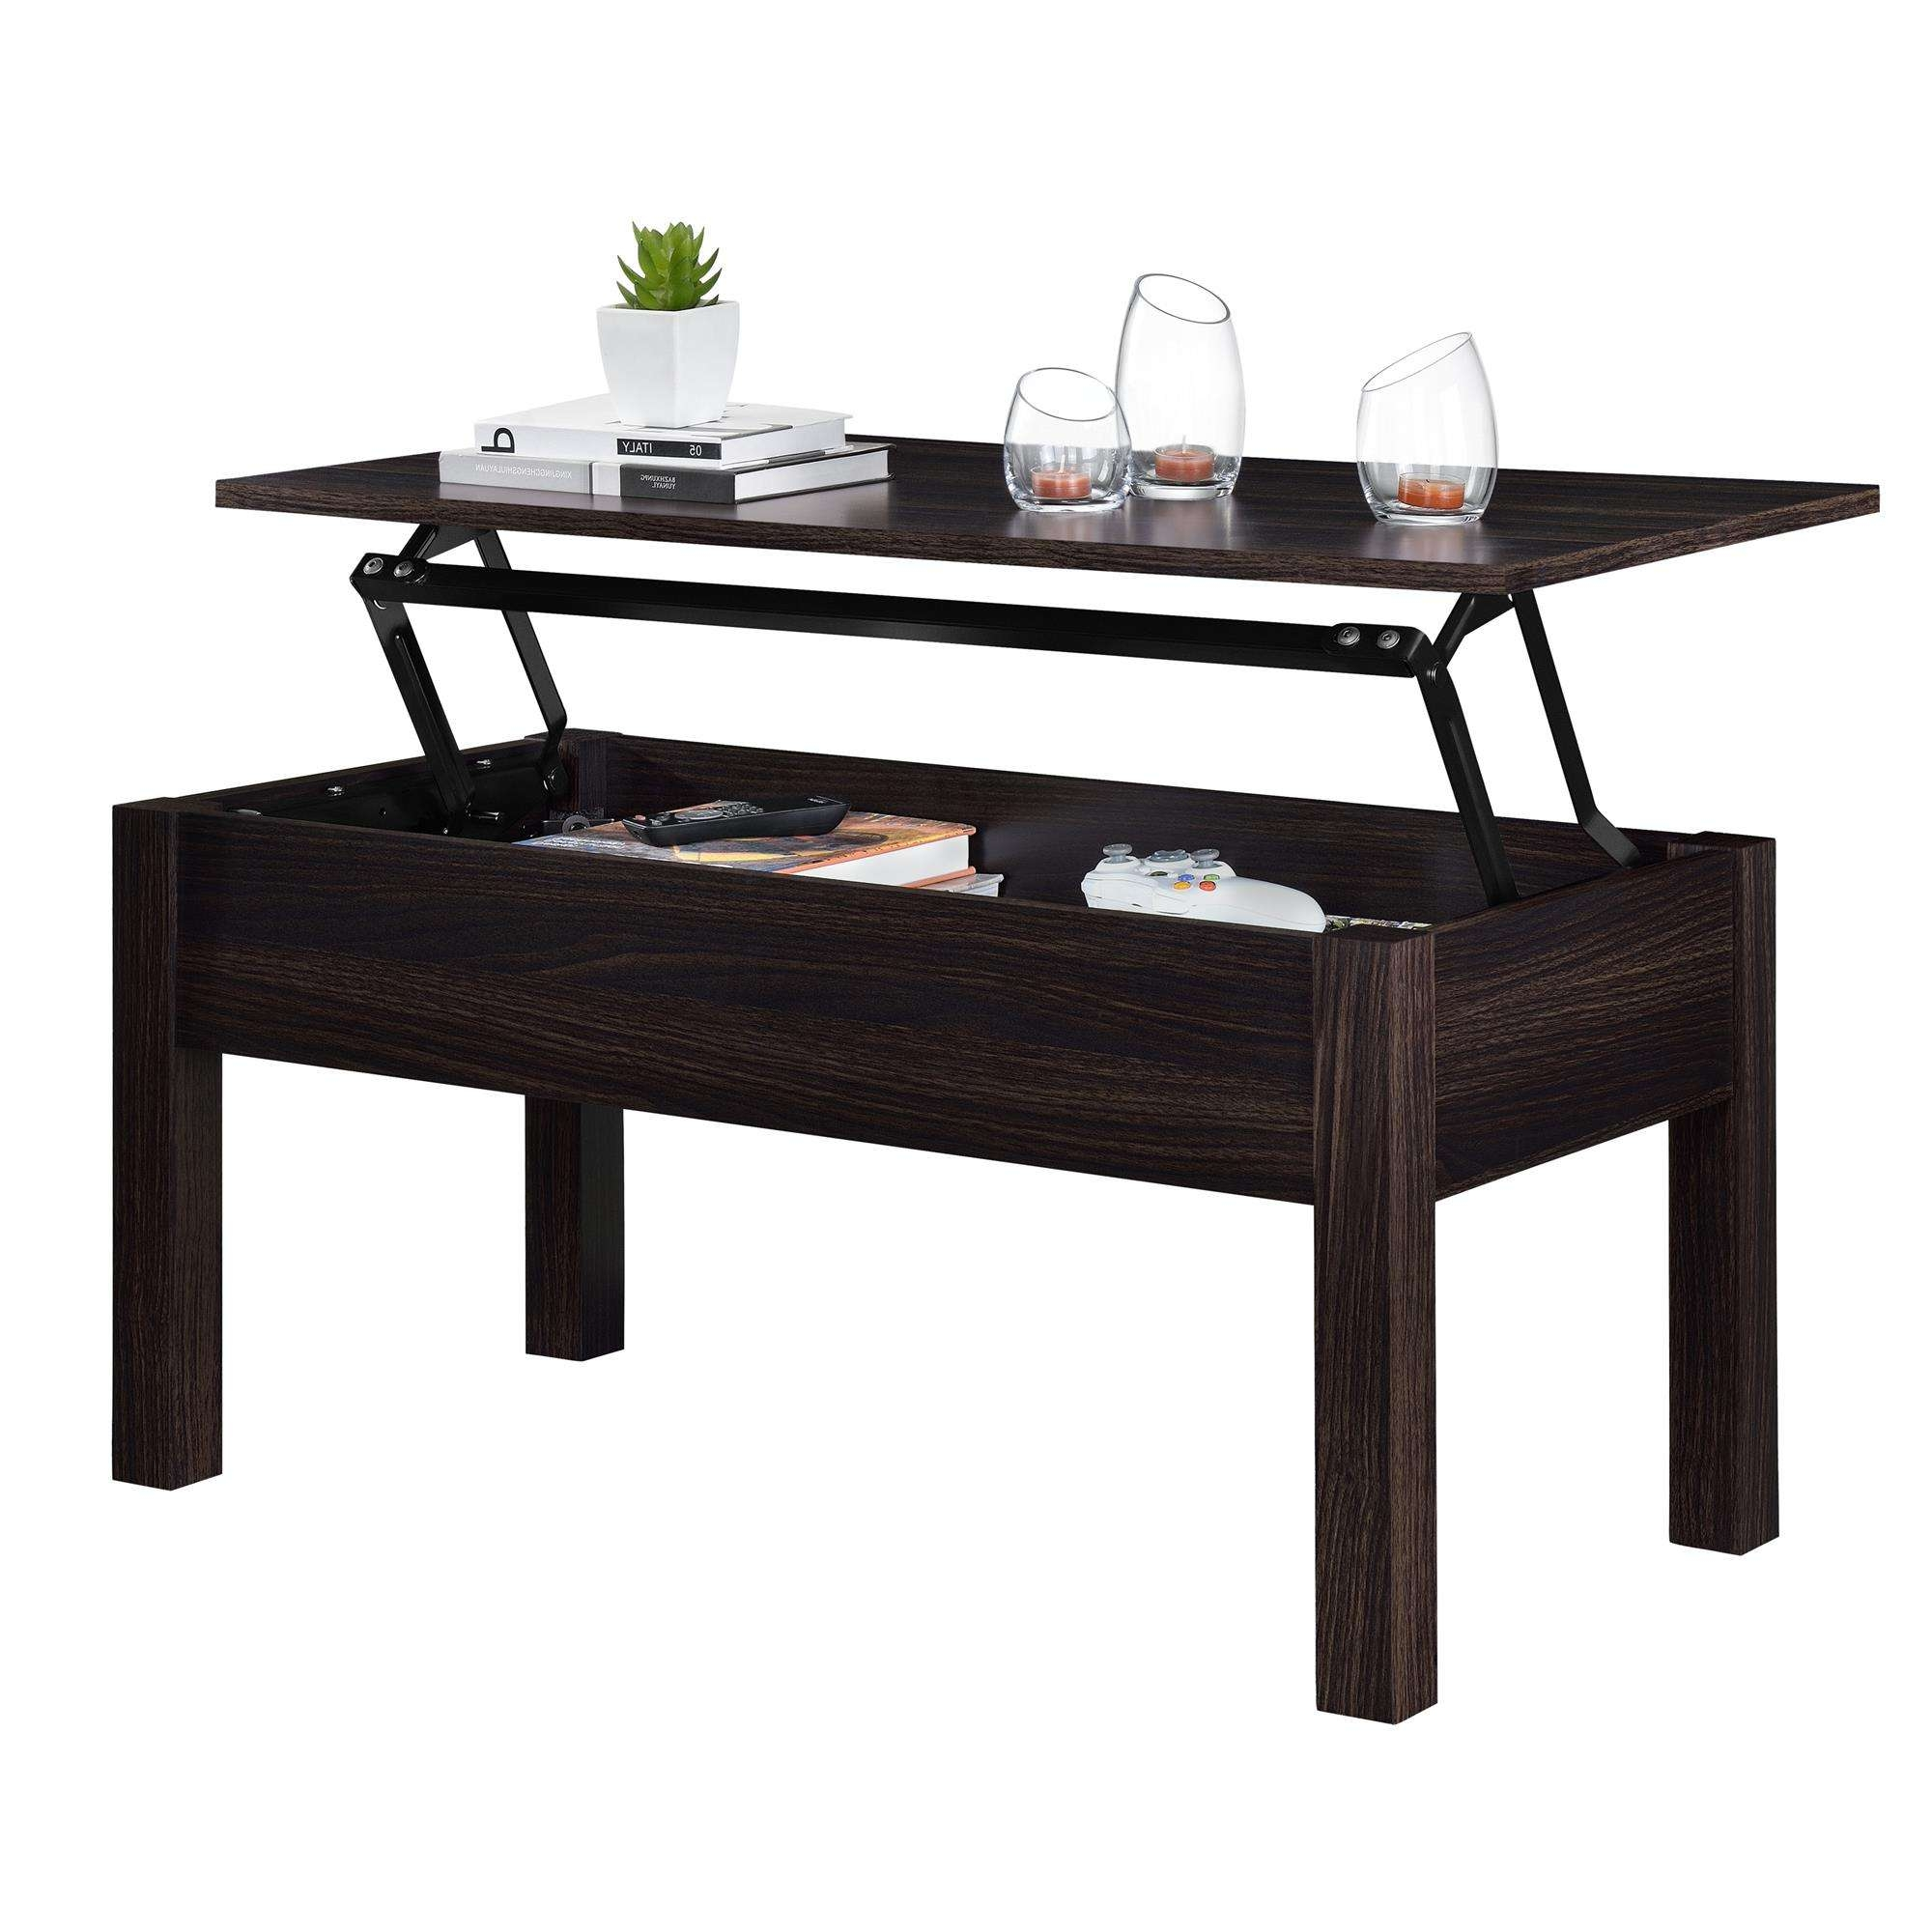 Mainstays Lift Top Coffee Table, Multiple Colors – Walmart In Recent Lifting Coffee Tables (View 6 of 20)